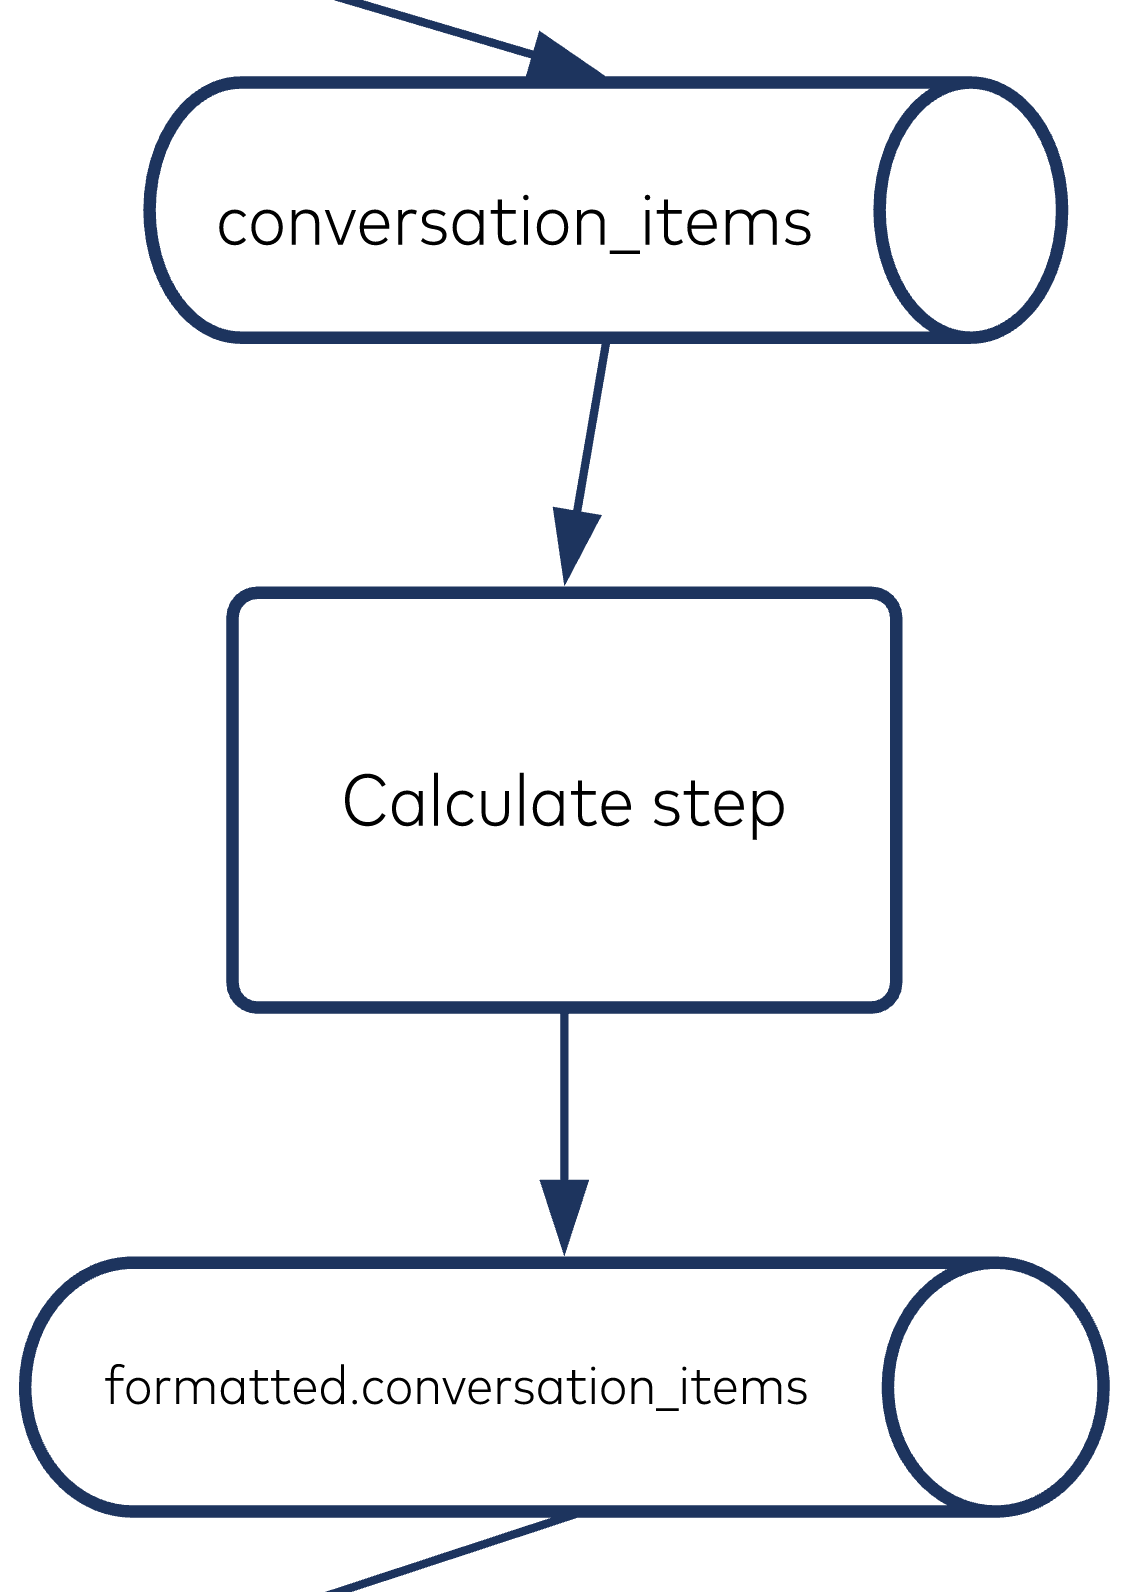 Calculating step